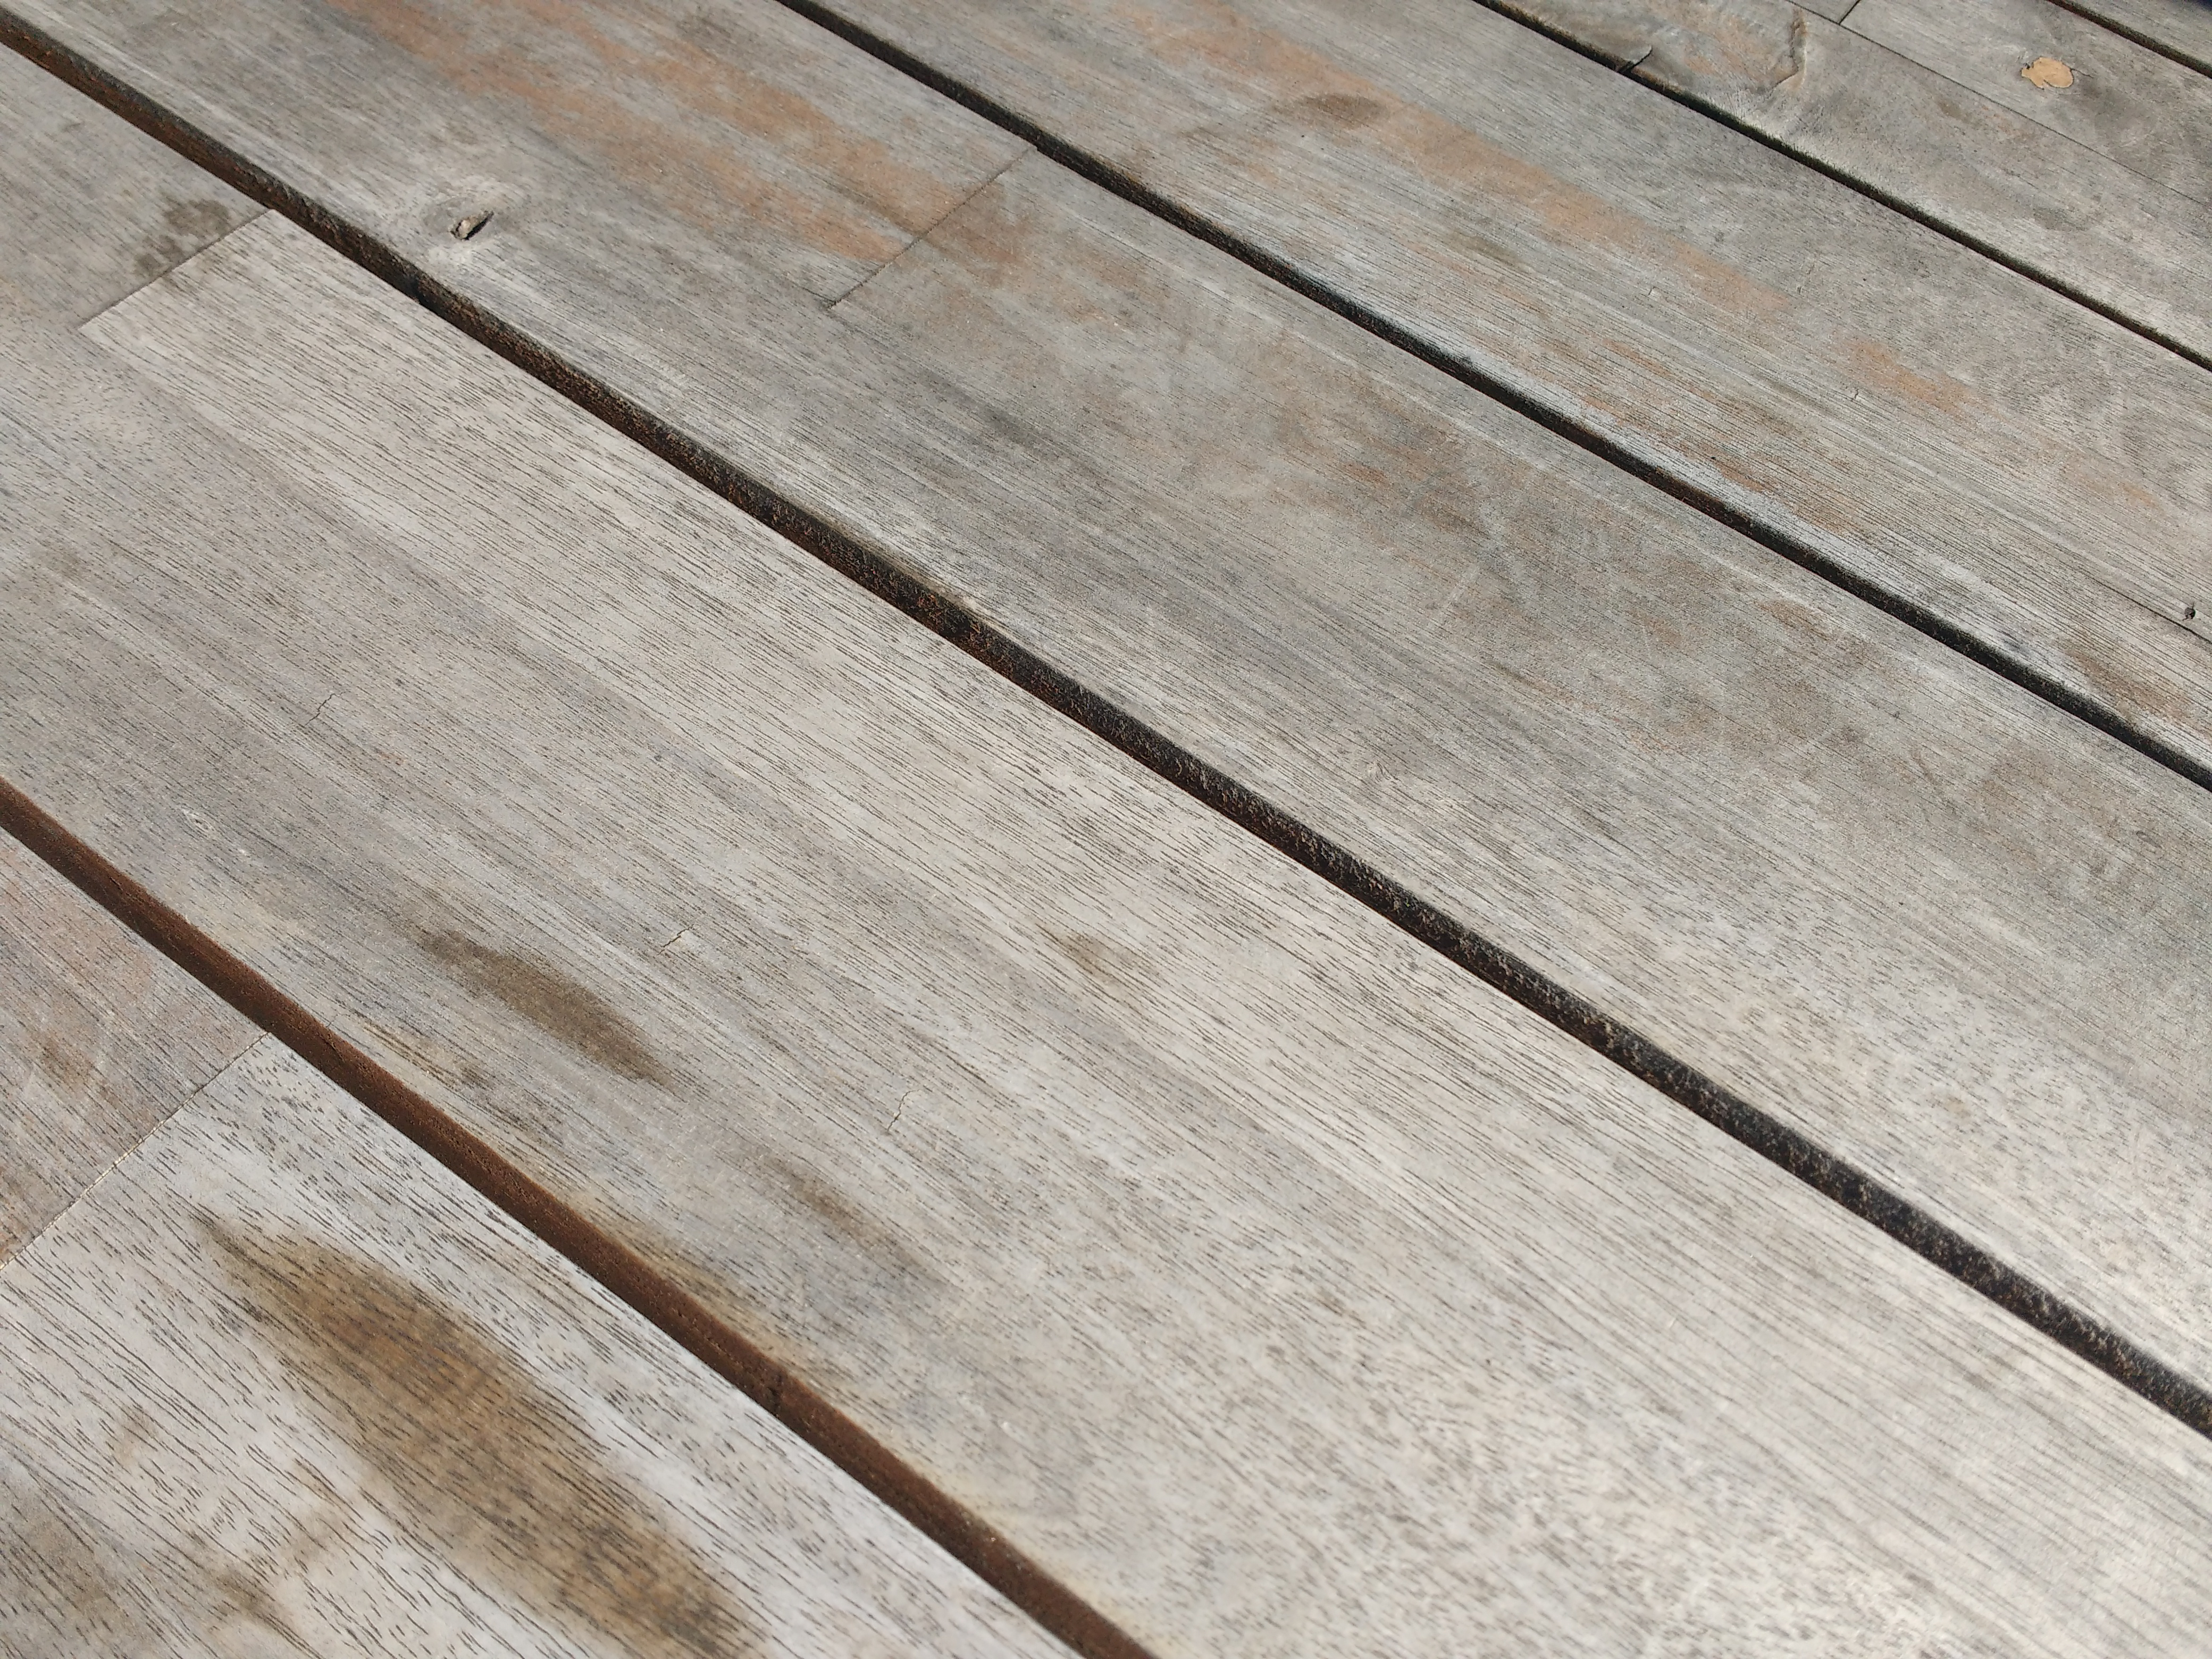 Diagonal Wooden Boards Texture Free High Resolution Photo